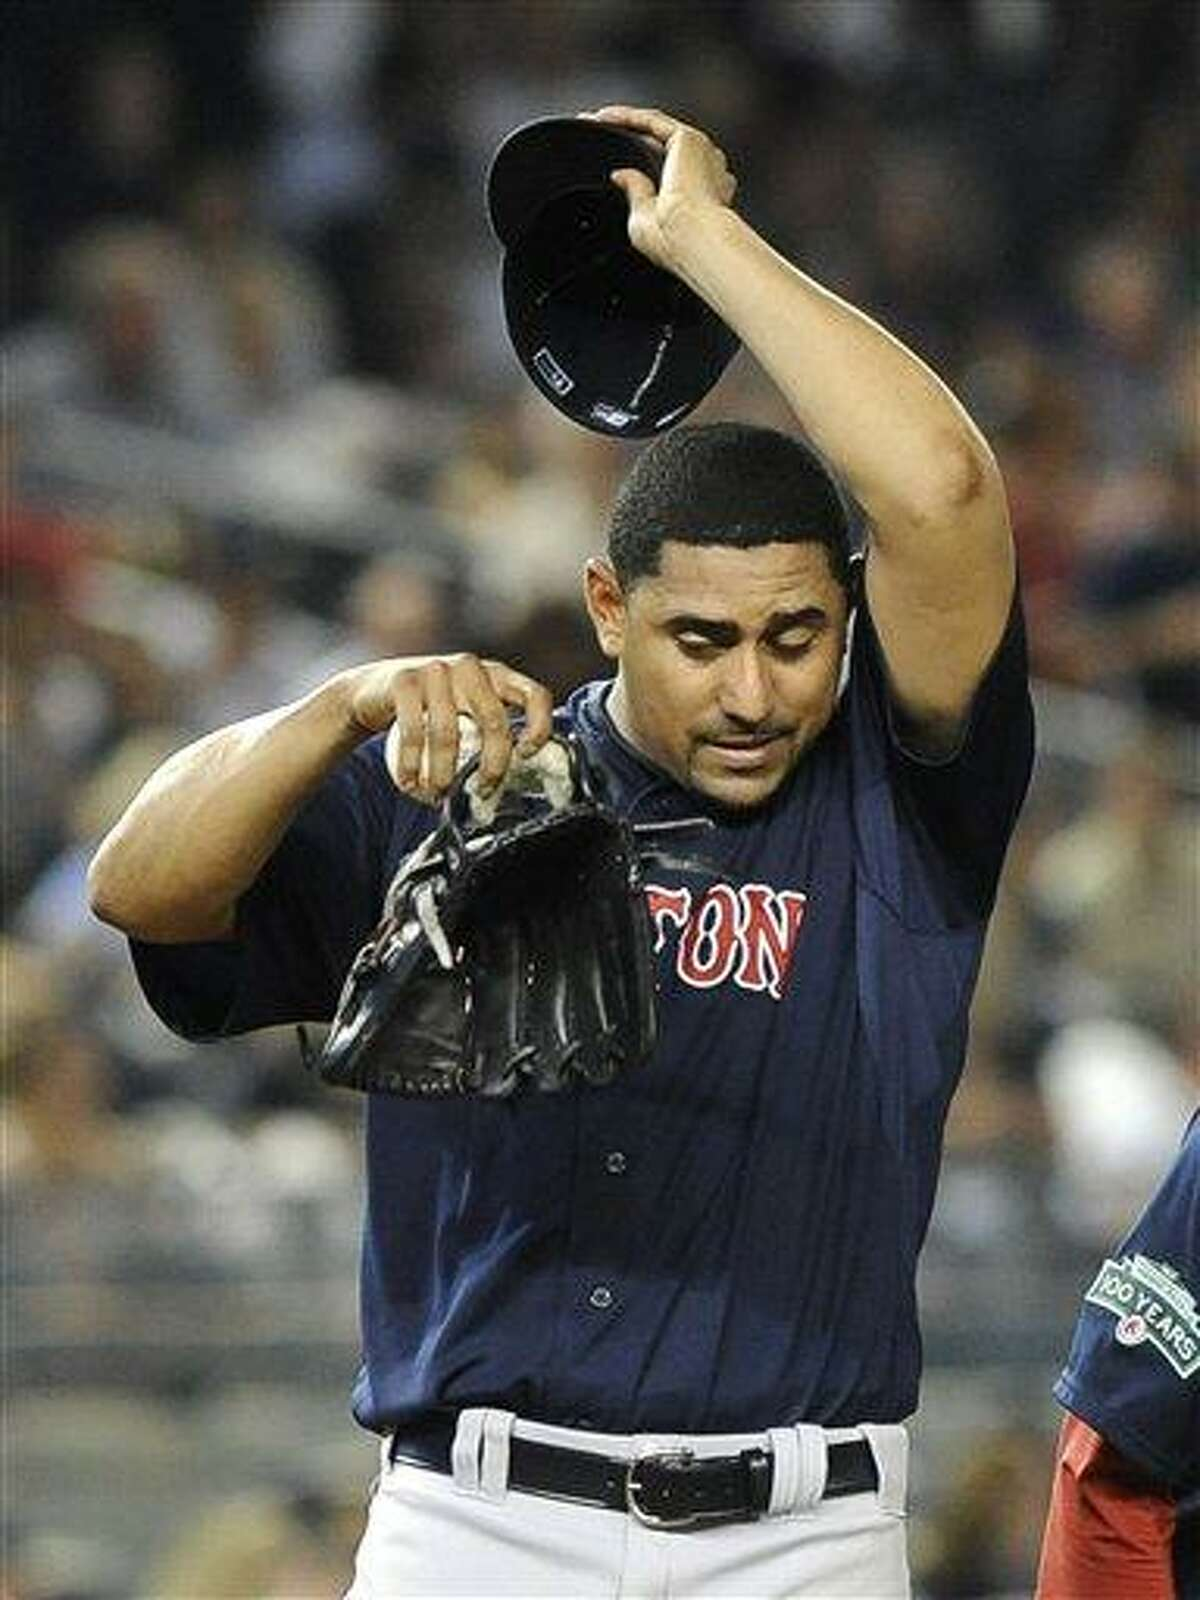 Boston Red Sox Franklin Morales reacts after giving up a solo home run to New York Yankees' Derek Jeter in the fifth inning of a baseball game on Friday, Aug., 17, 2012, at Yankee Stadium in New York. (AP Photo/Kathy Kmonicek)